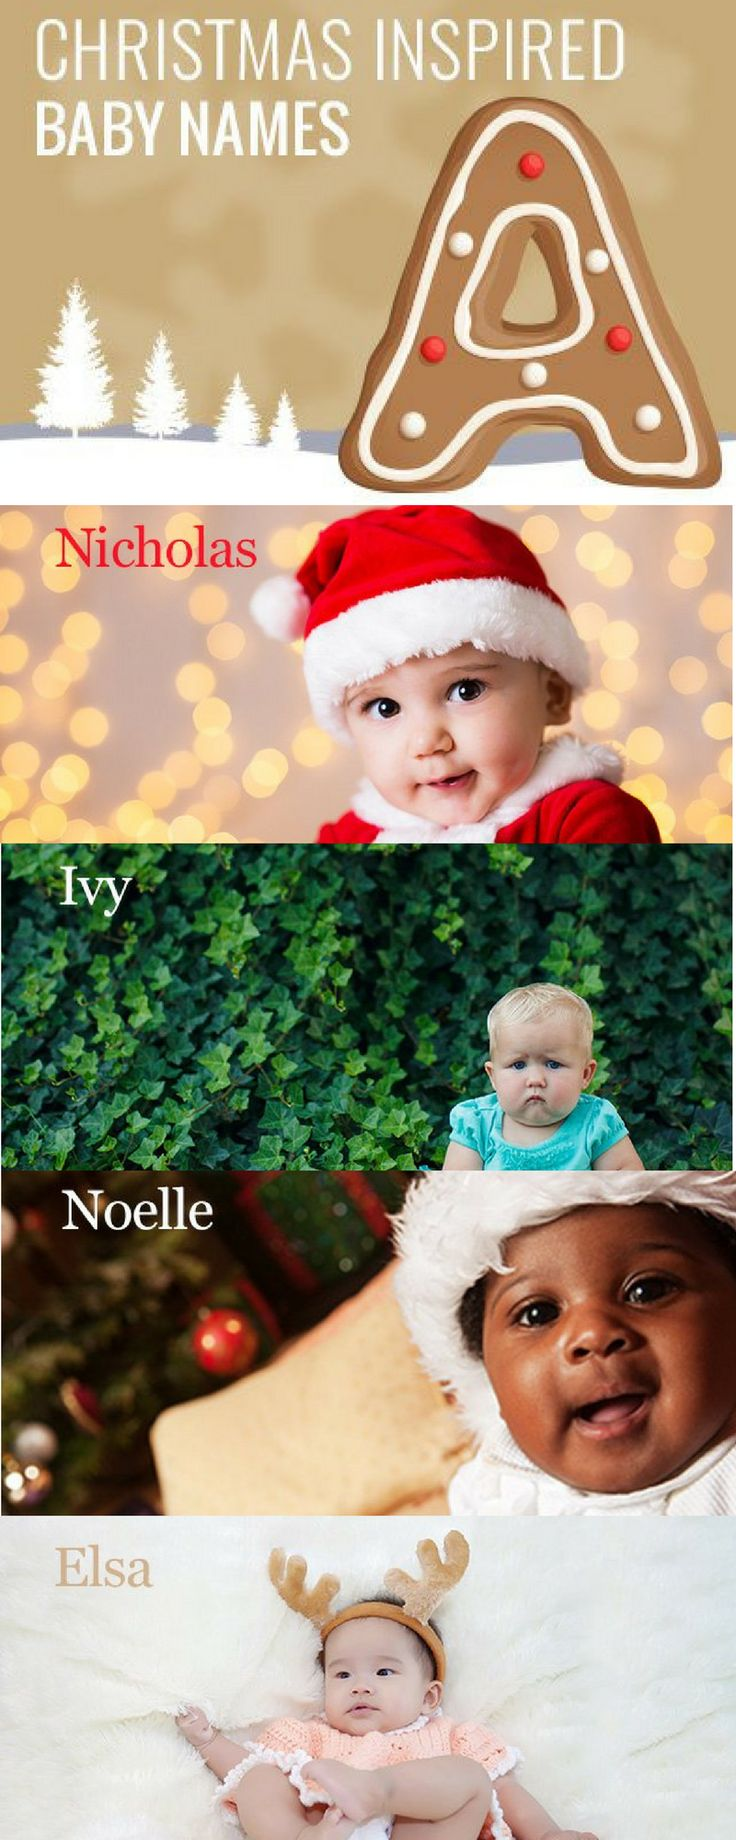 Here are some of our favourite Christmas inspired baby names! Click on the image to see more festive name ideas - and what they mean!